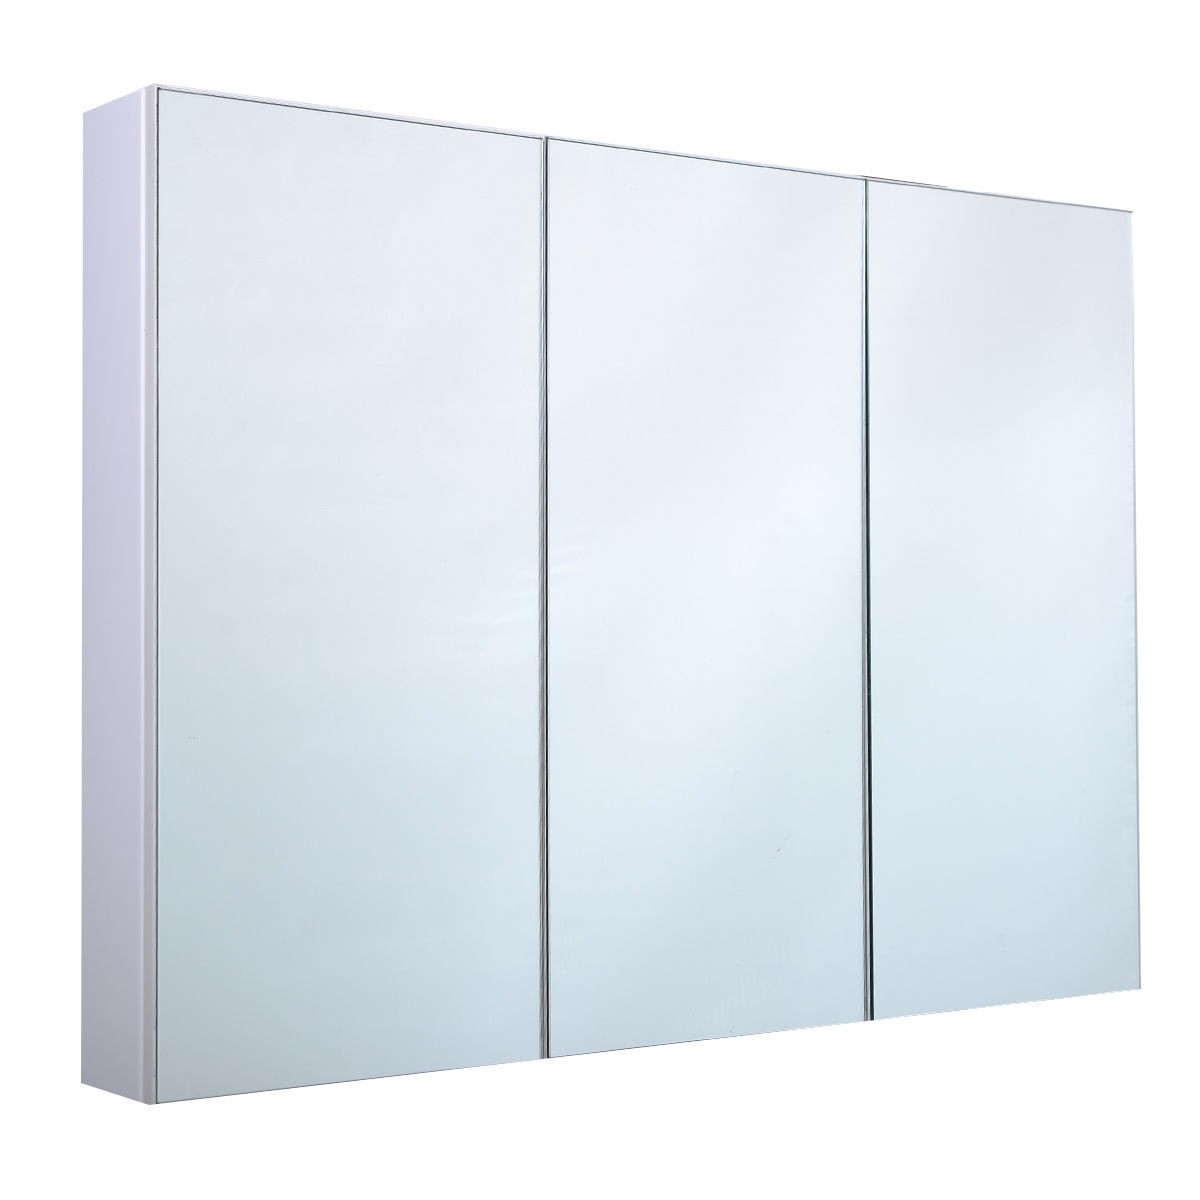 3 mirror door 36 20 wide wall mount mirrored bathroom medicine cabinet storage ebay. Black Bedroom Furniture Sets. Home Design Ideas